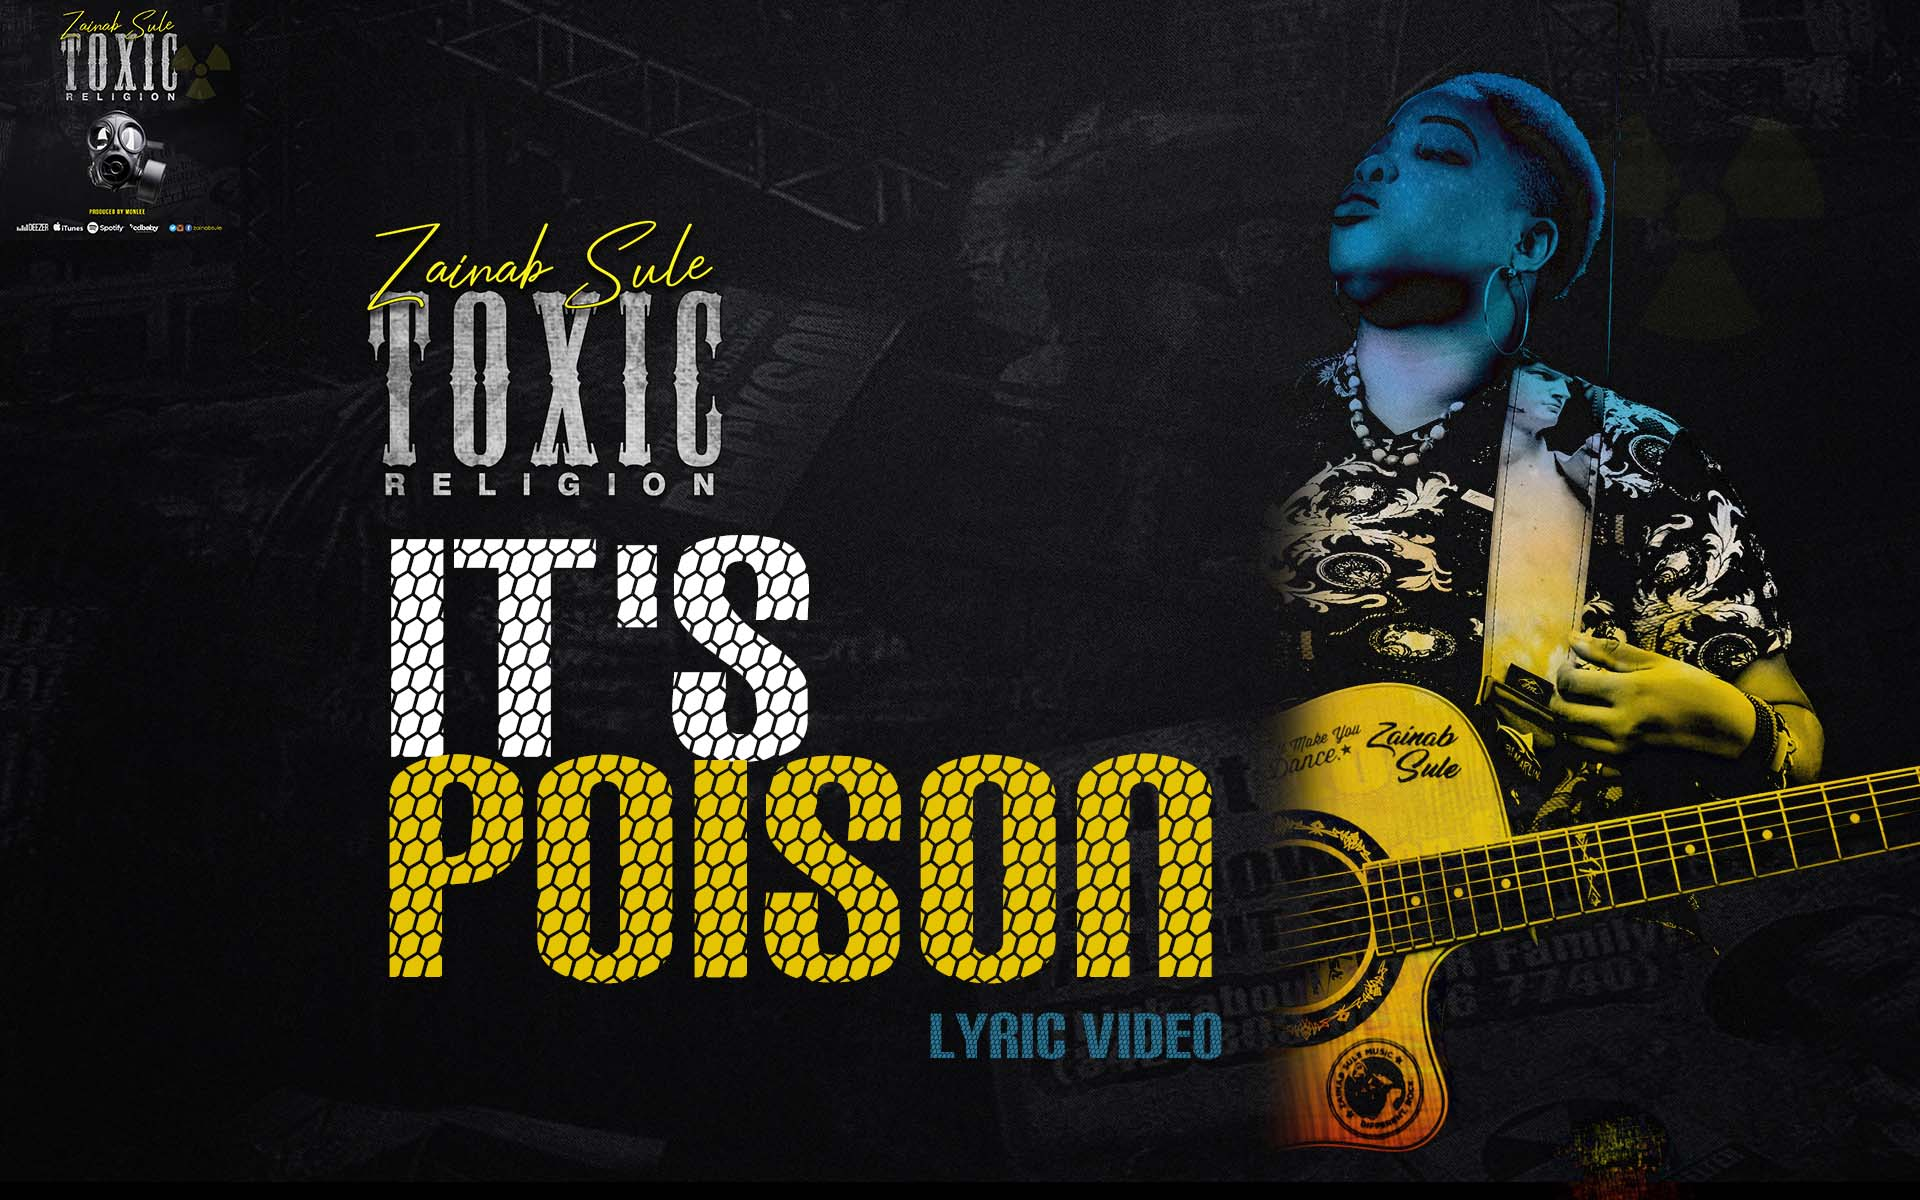 zainab sule toxic religion visualizer video